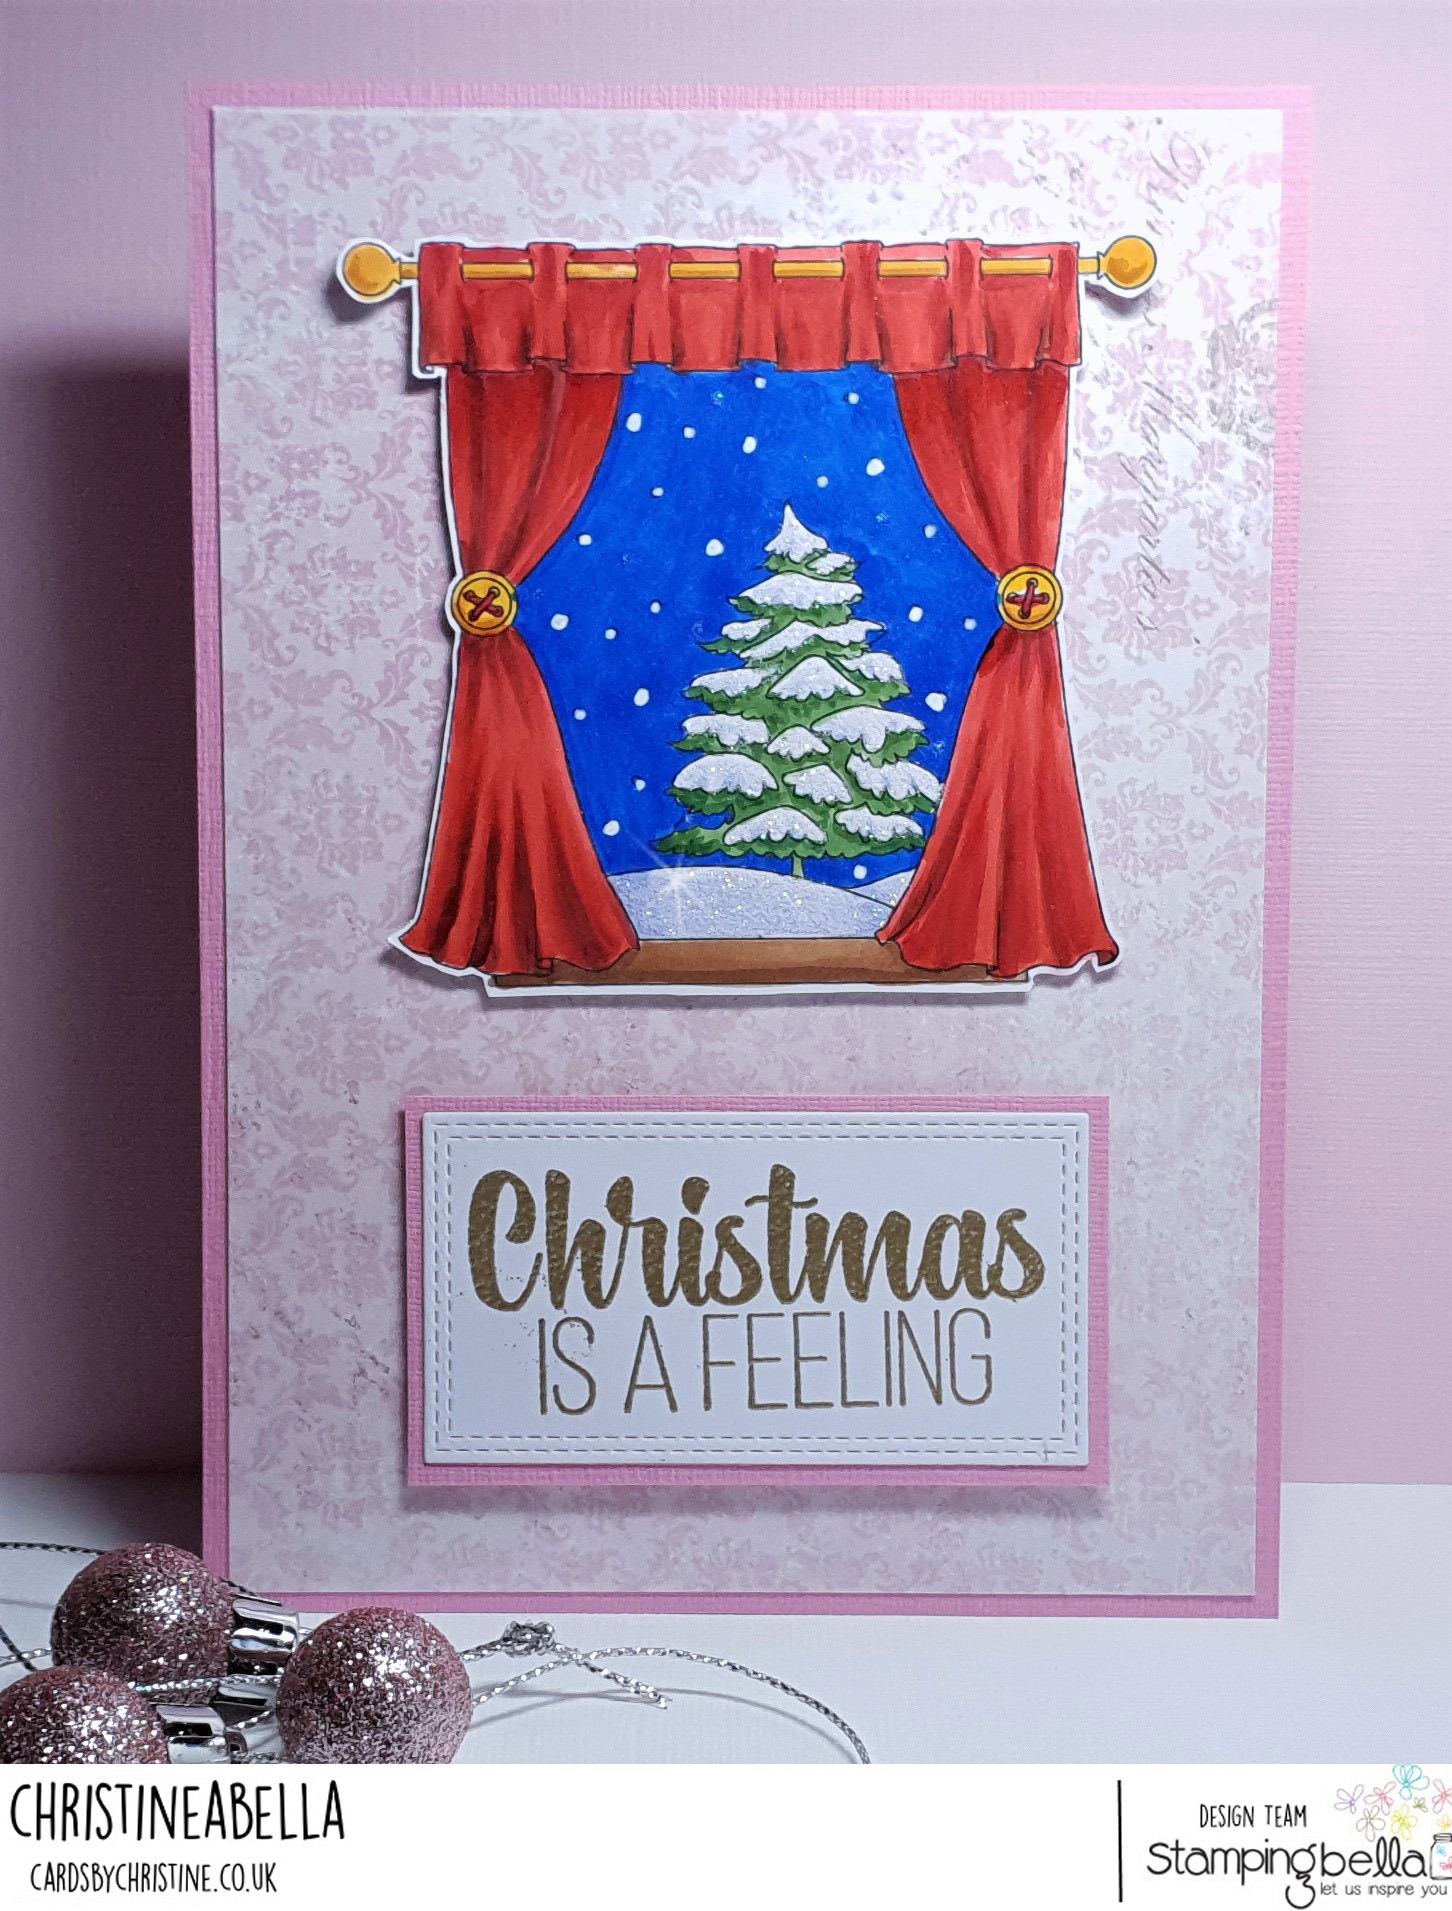 www.stampingbella.com : Rubber stamp used: WINTER WINDOW, card by Christine Levison